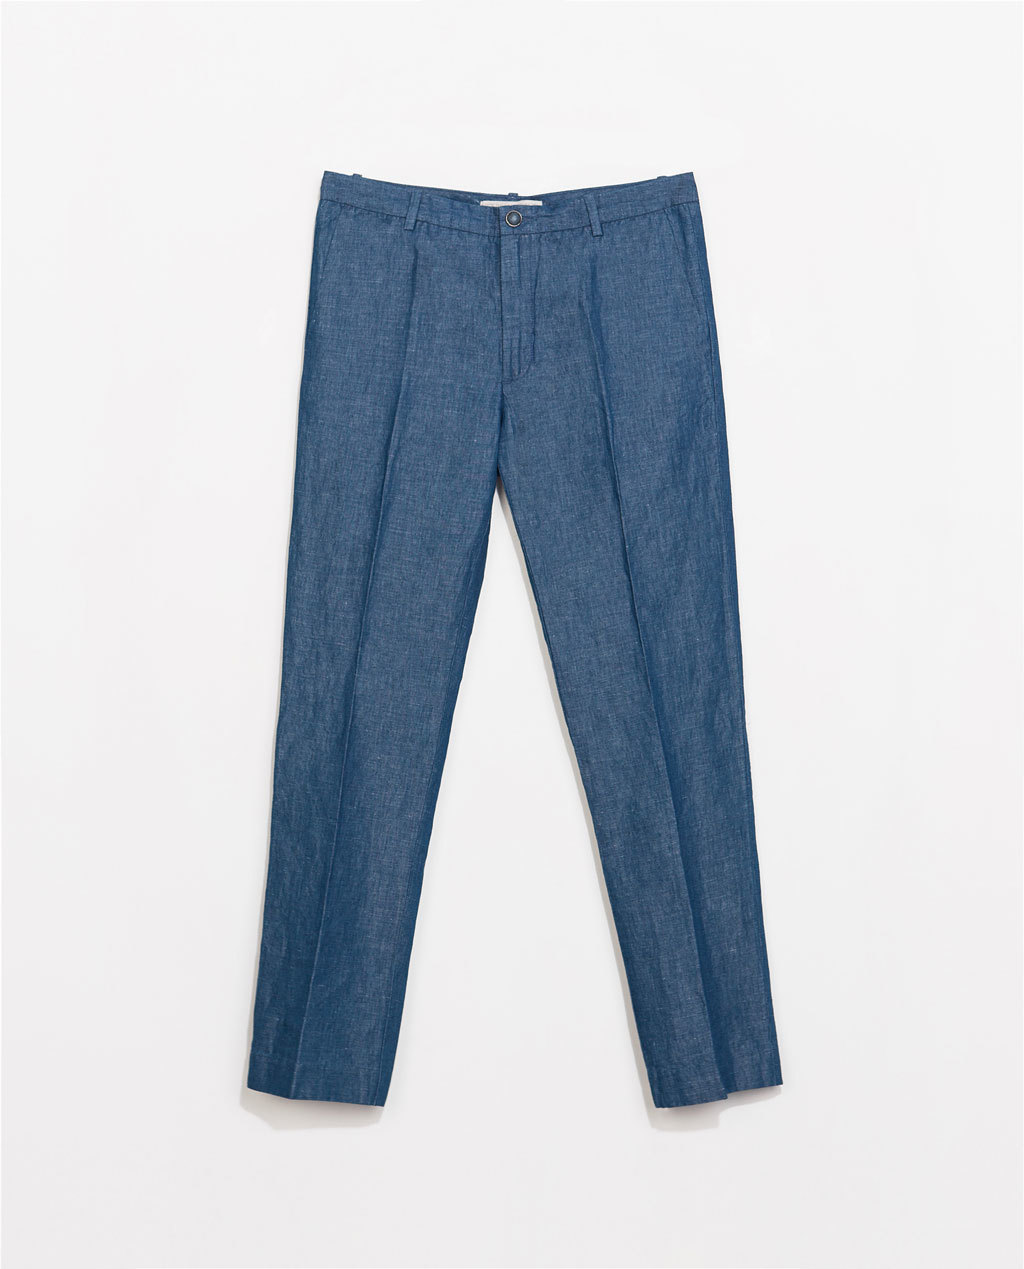 Denim Chino Trousers - pattern: plain; waist: mid/regular rise; predominant colour: royal blue; occasions: casual, creative work; length: ankle length; fibres: cotton - mix; texture group: denim; fit: straight leg; pattern type: fabric; style: standard; season: s/s 2014